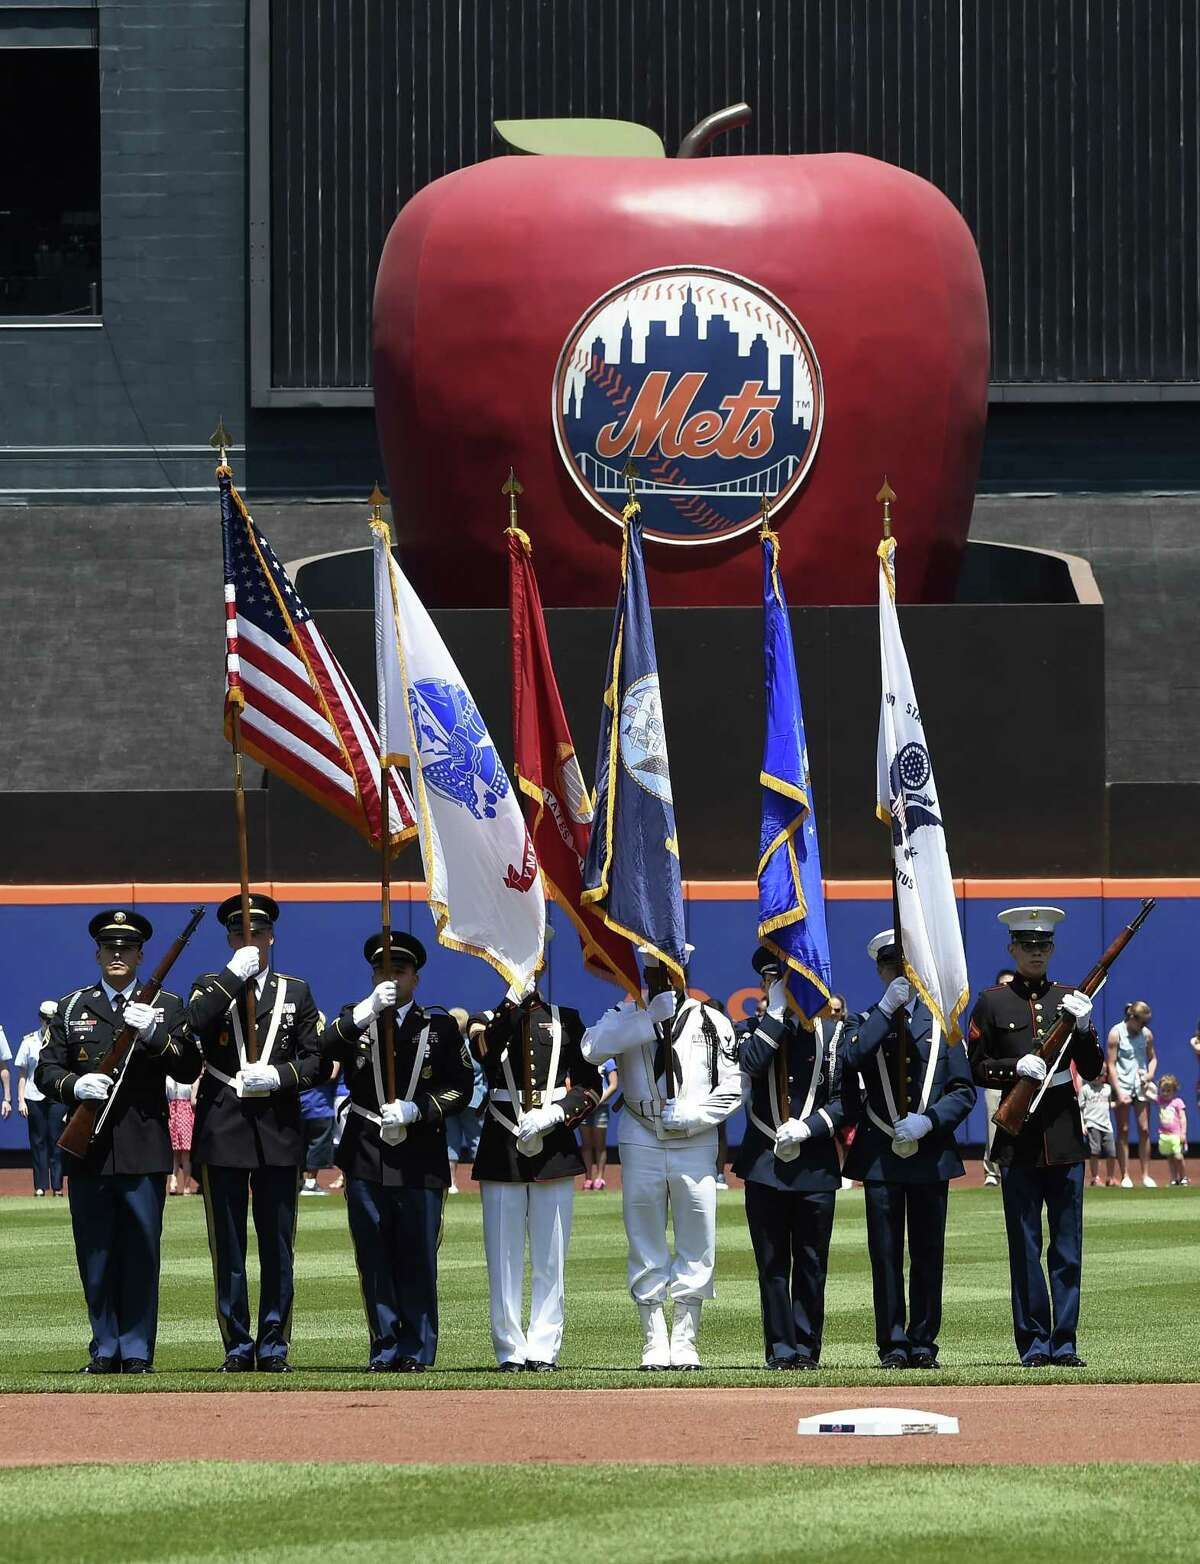 The United States Joint Service color guard present the colors before Monday's game between the Mets and Philadelphia Phillies in New York.